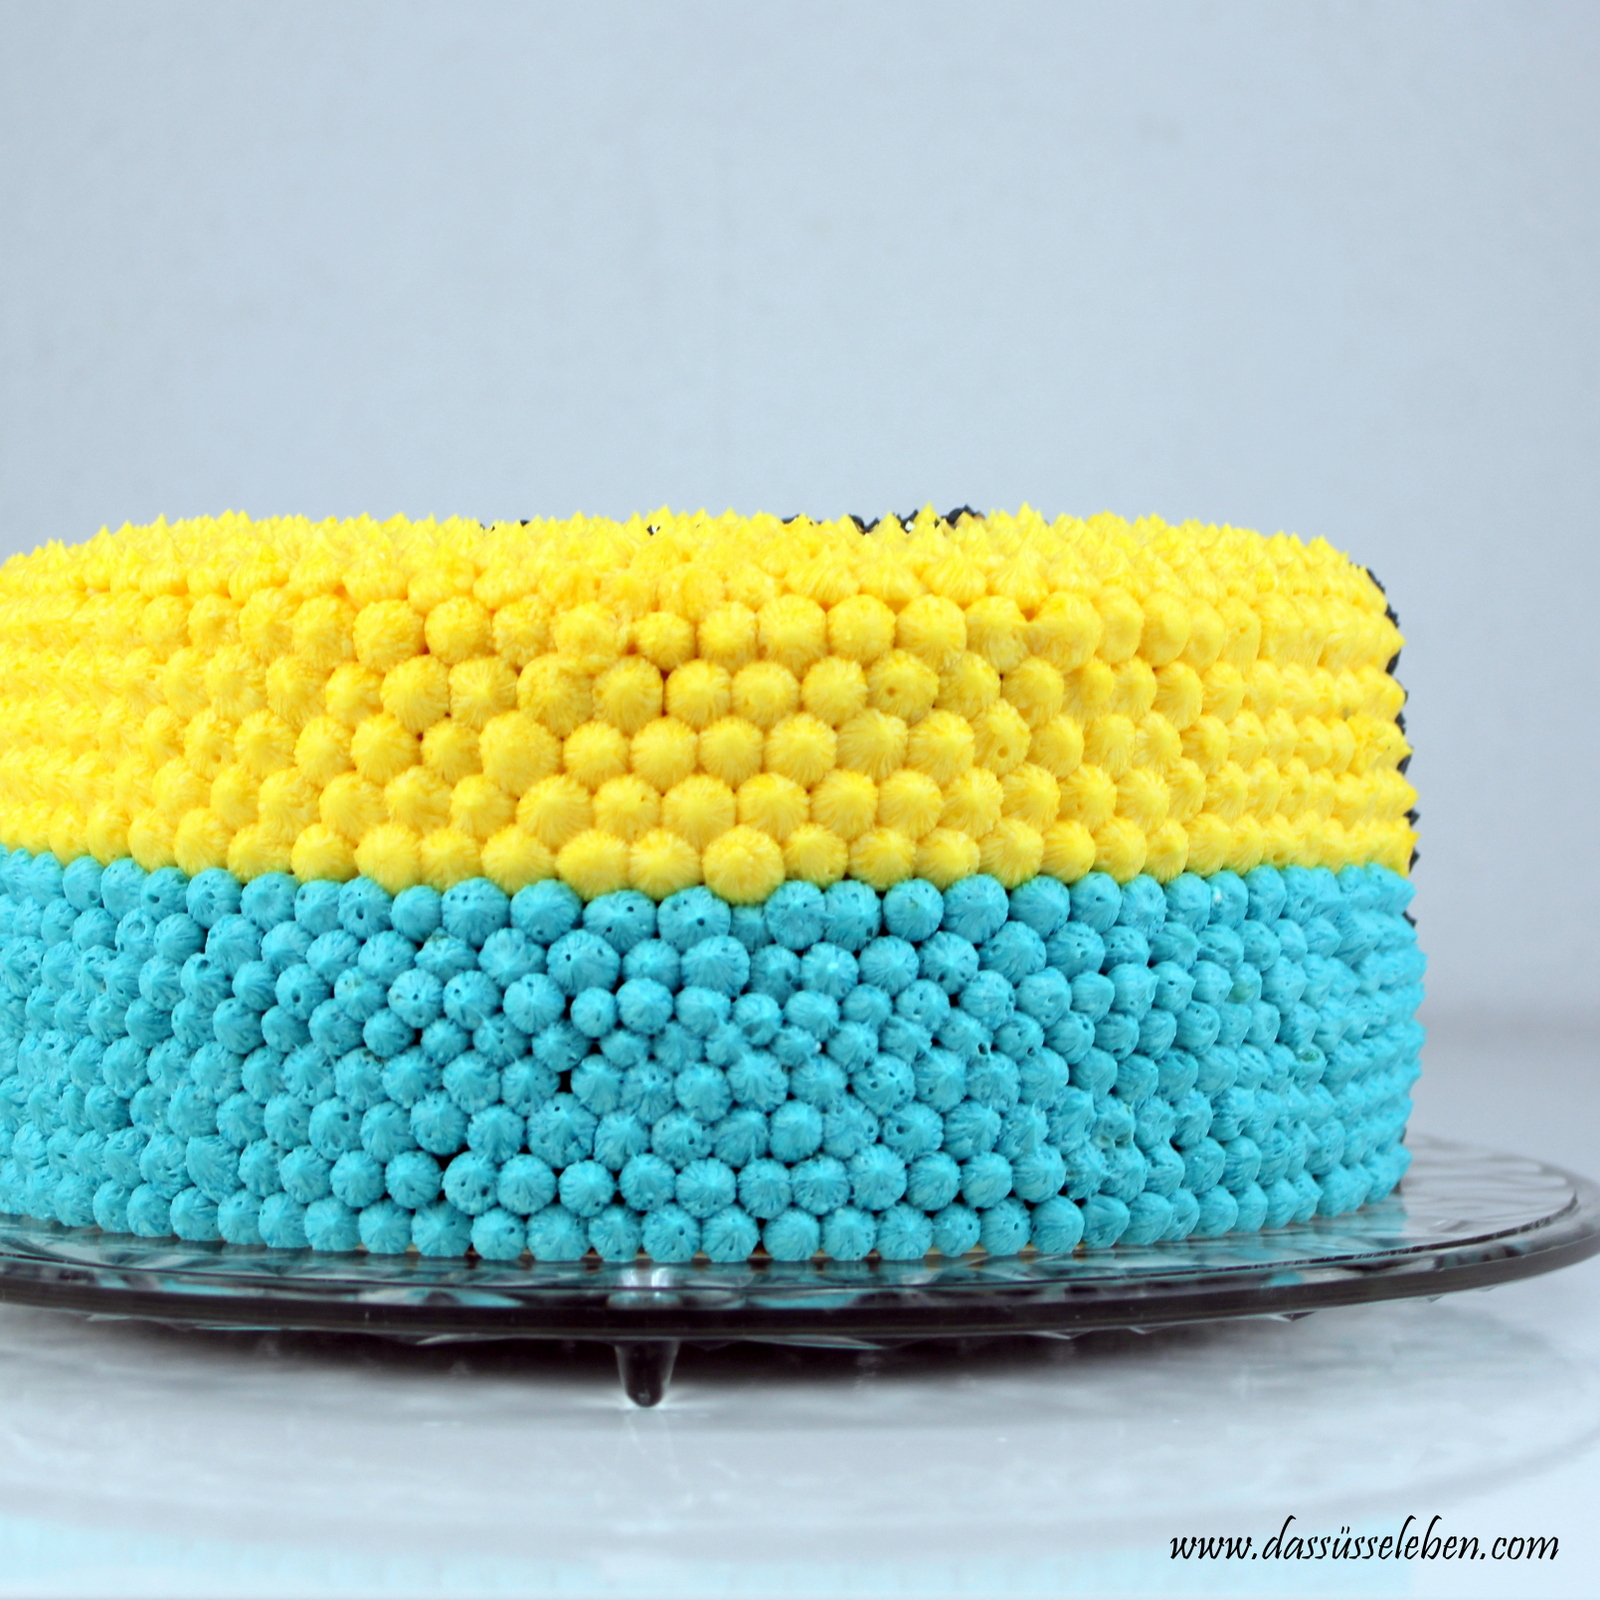 rezept minion torte aus buttercreme das s e leben. Black Bedroom Furniture Sets. Home Design Ideas